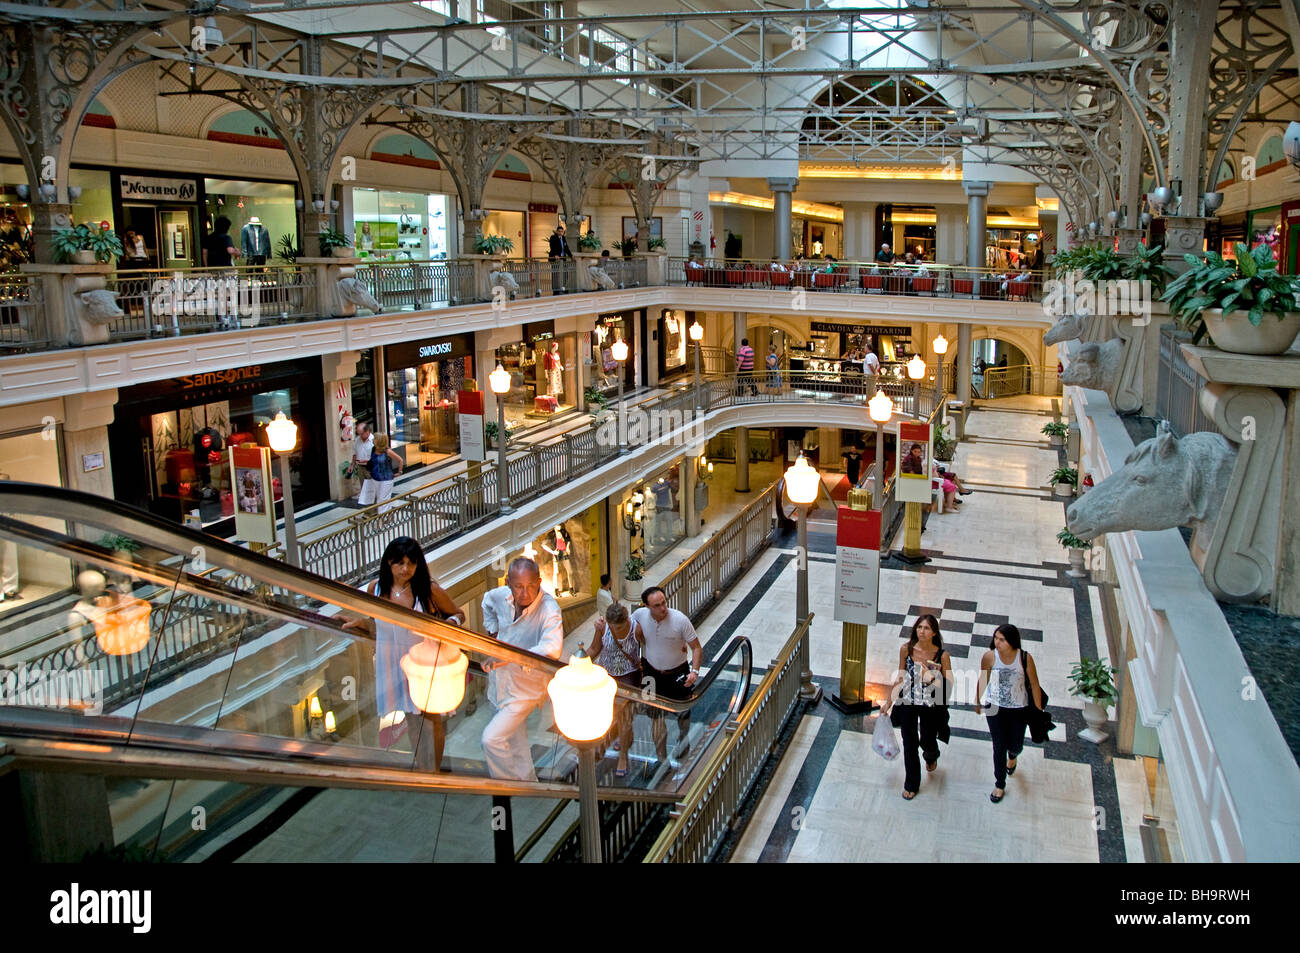 Buenos Aires Argentina Patio Bullrich Shopping Mall - Stock Image